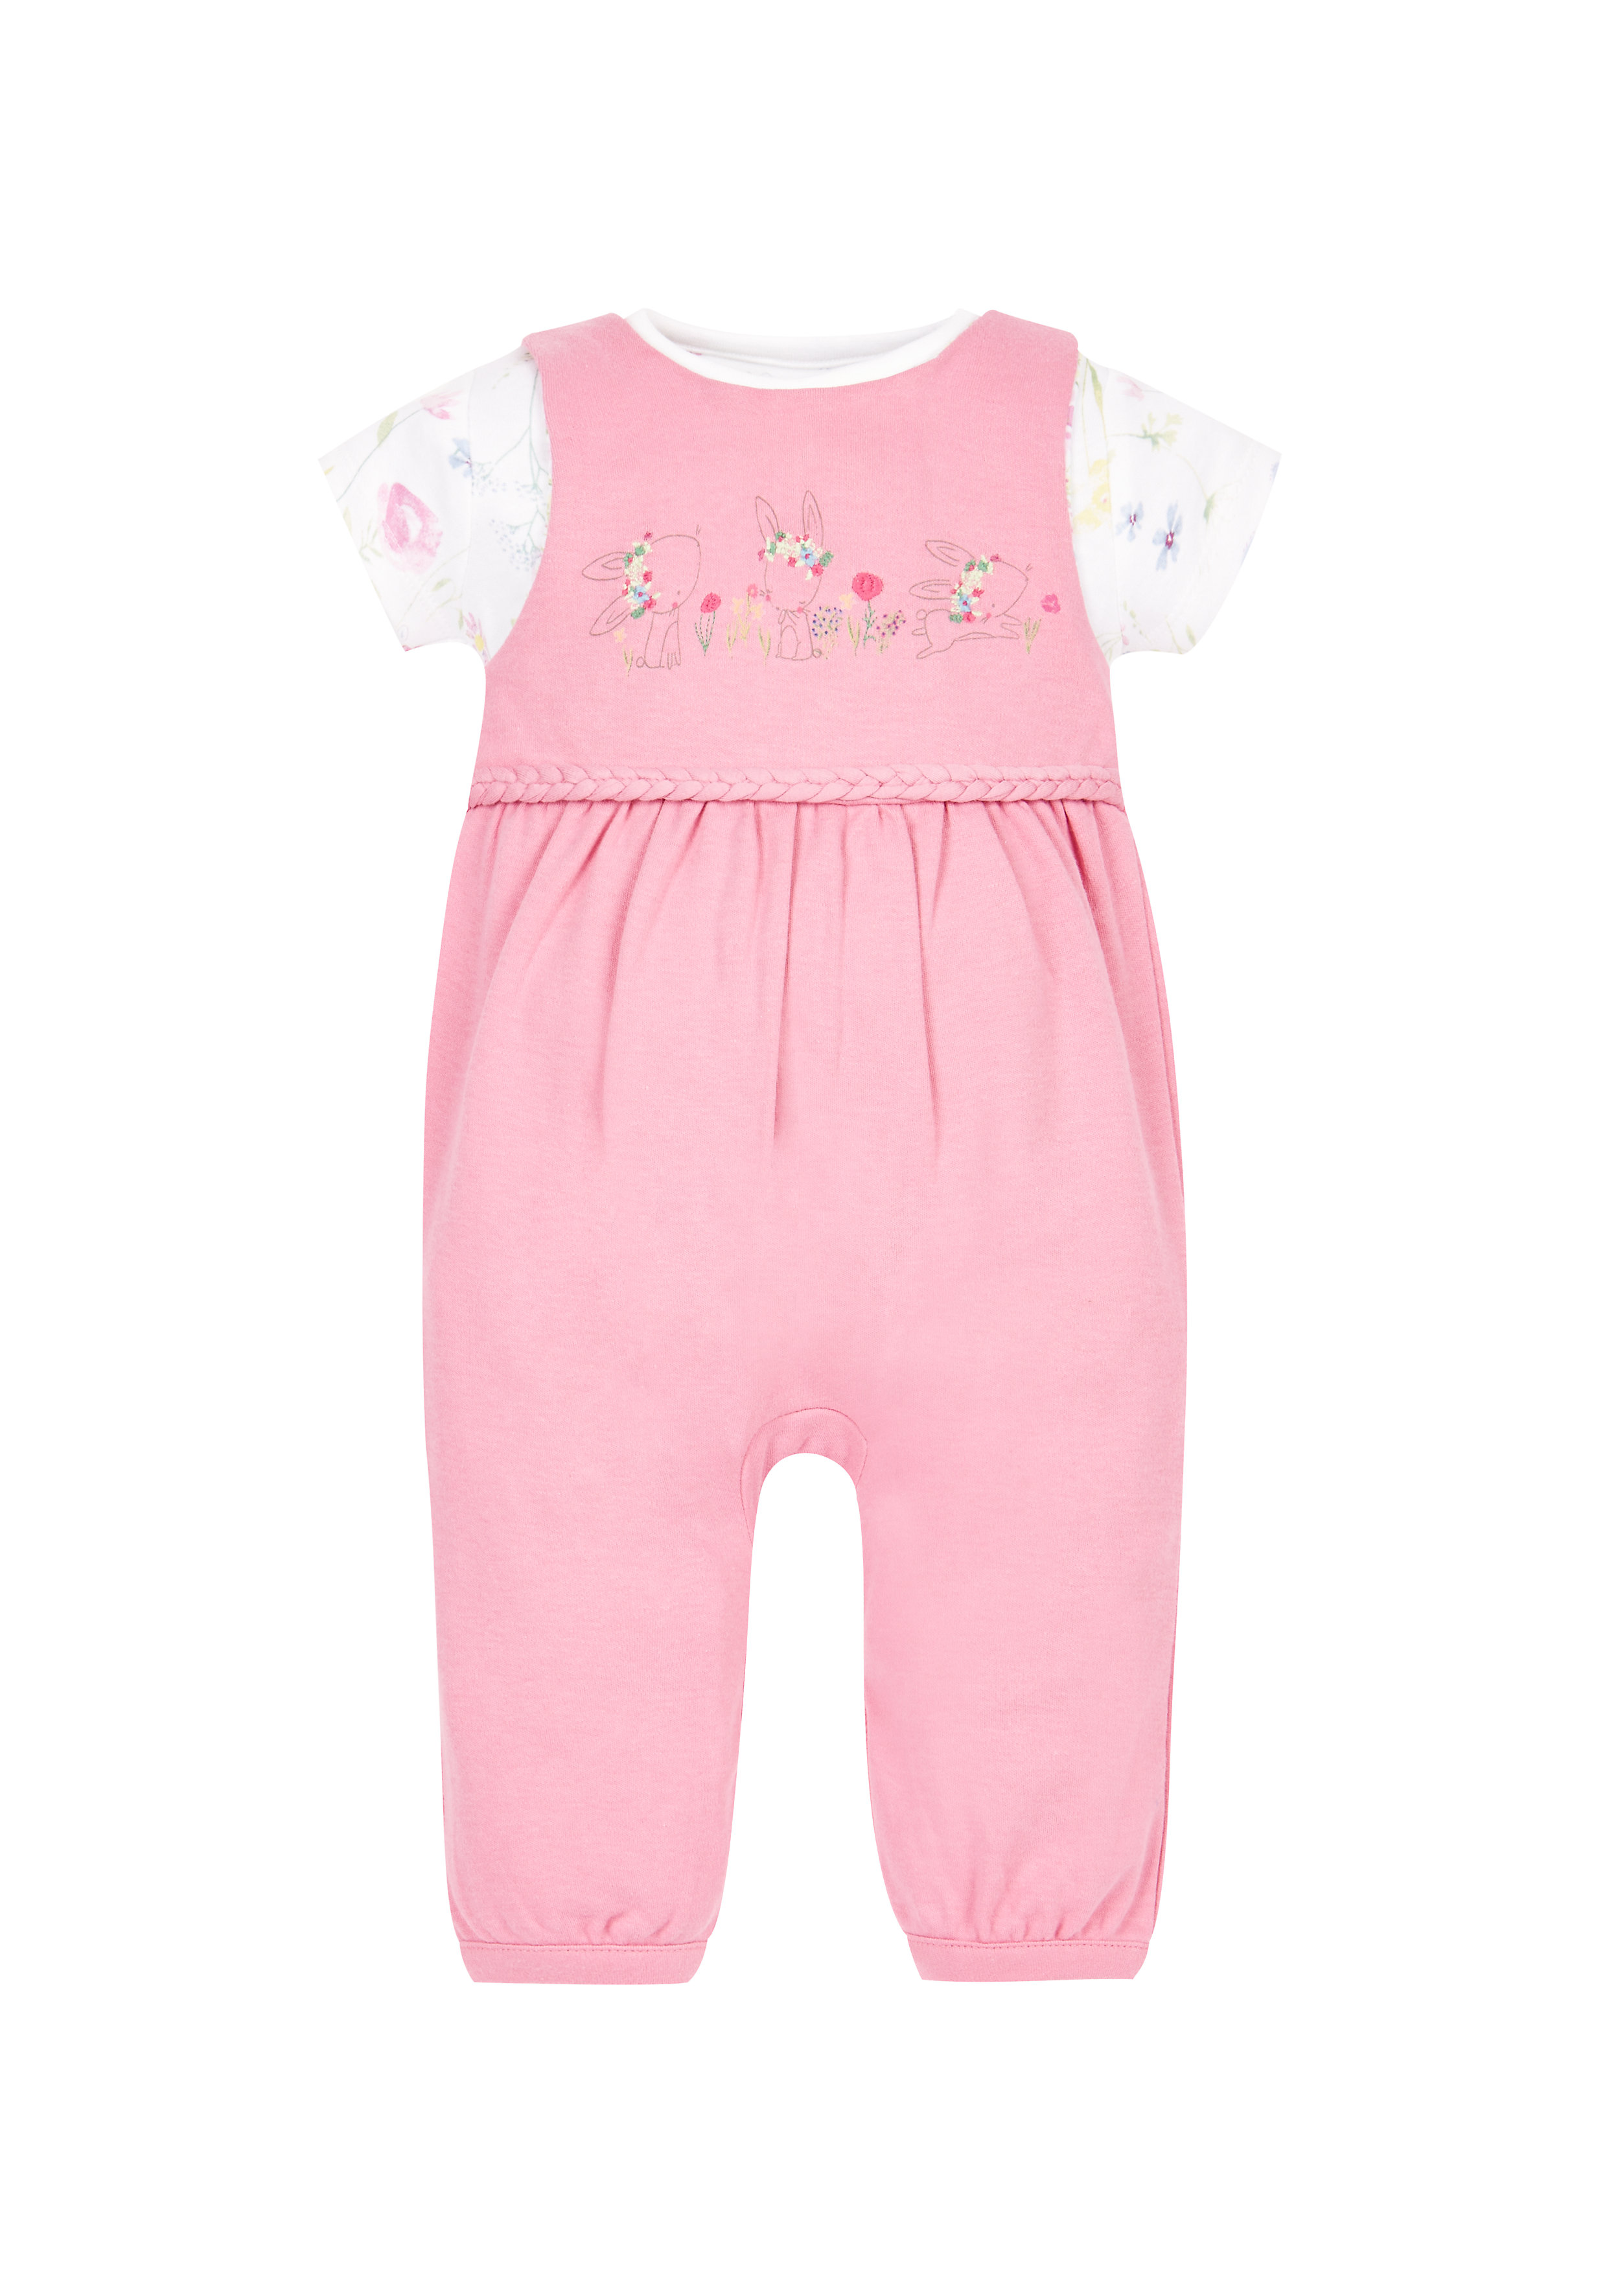 Mothercare | Girls Floral Bodysuit And Dungaree Set - Grey